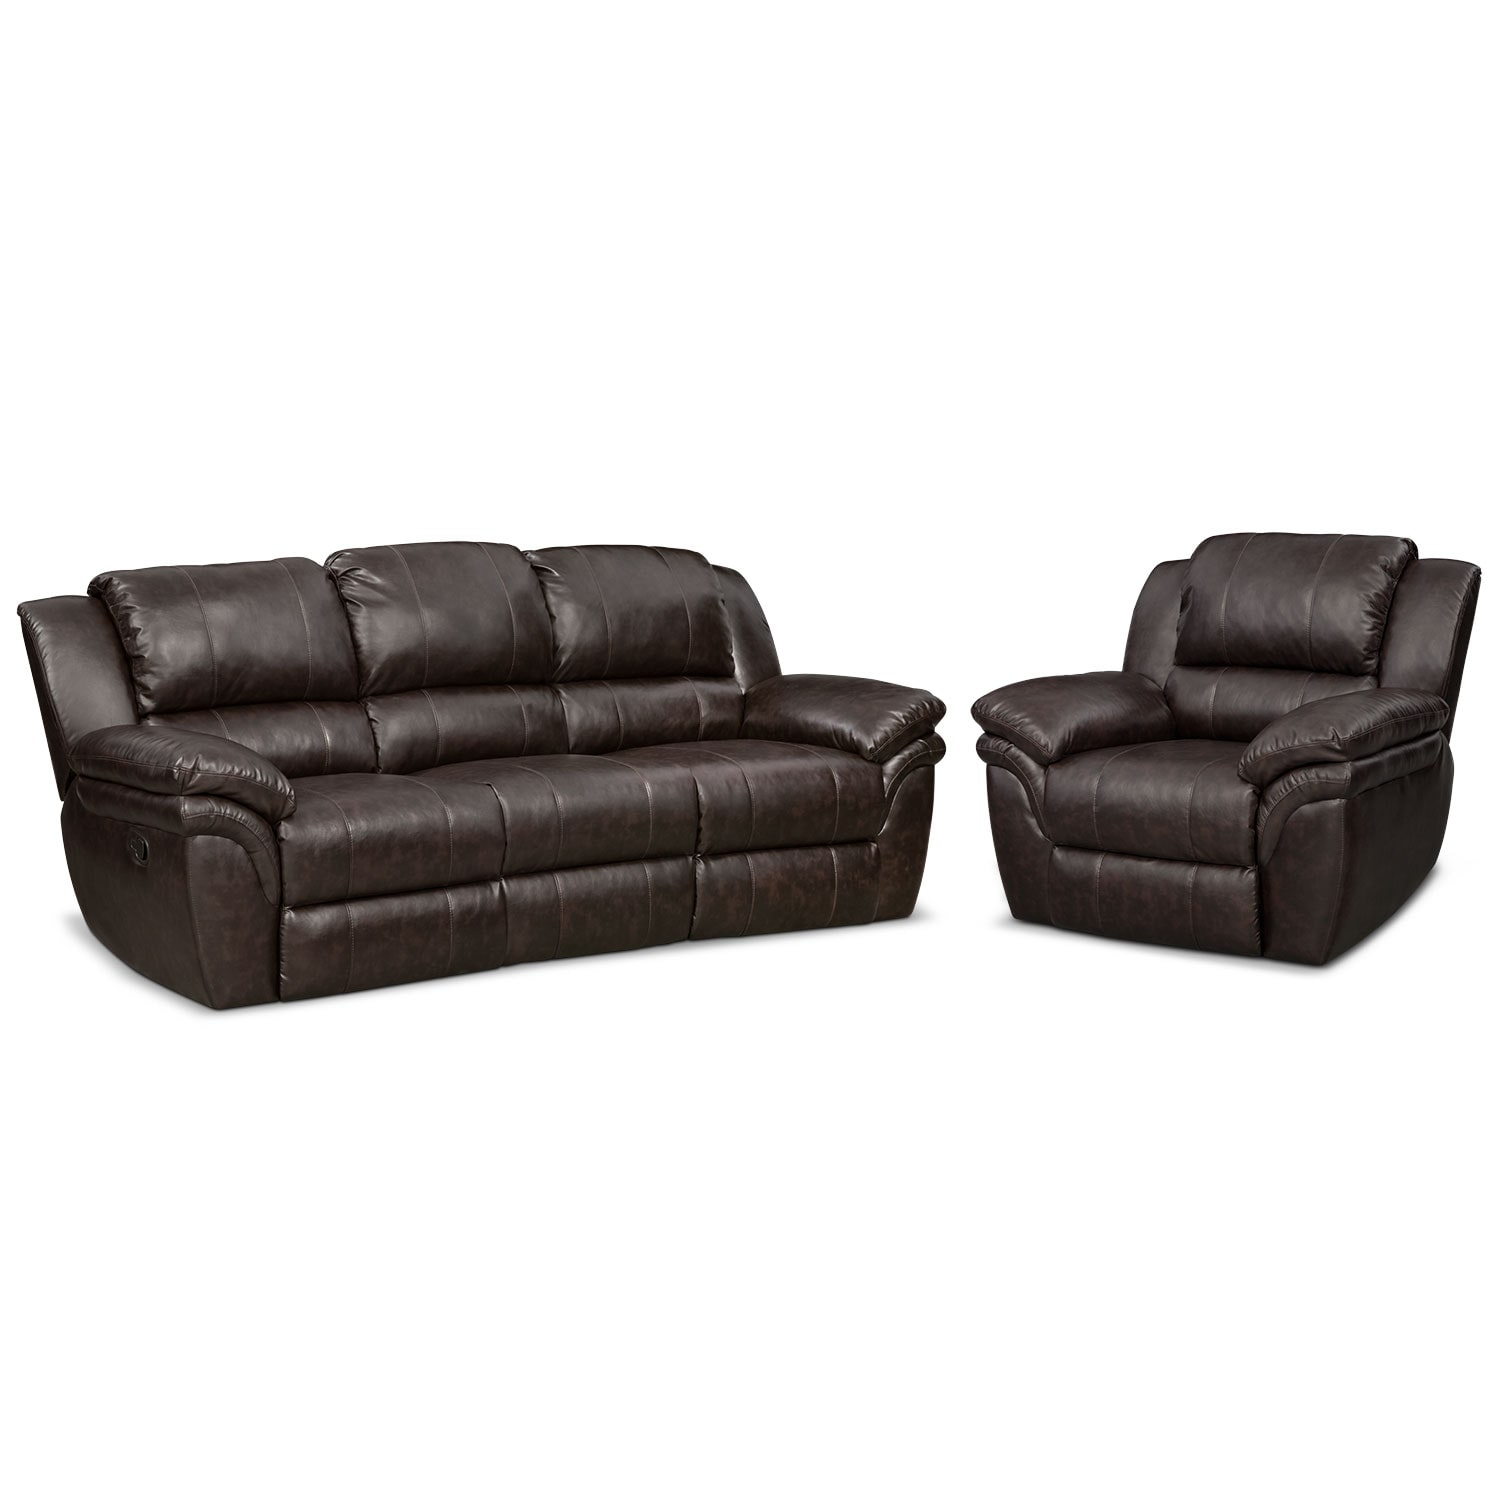 Living Room Furniture - Omni Brown 2 Pc. Manual Reclining Living Room w/ Recliner